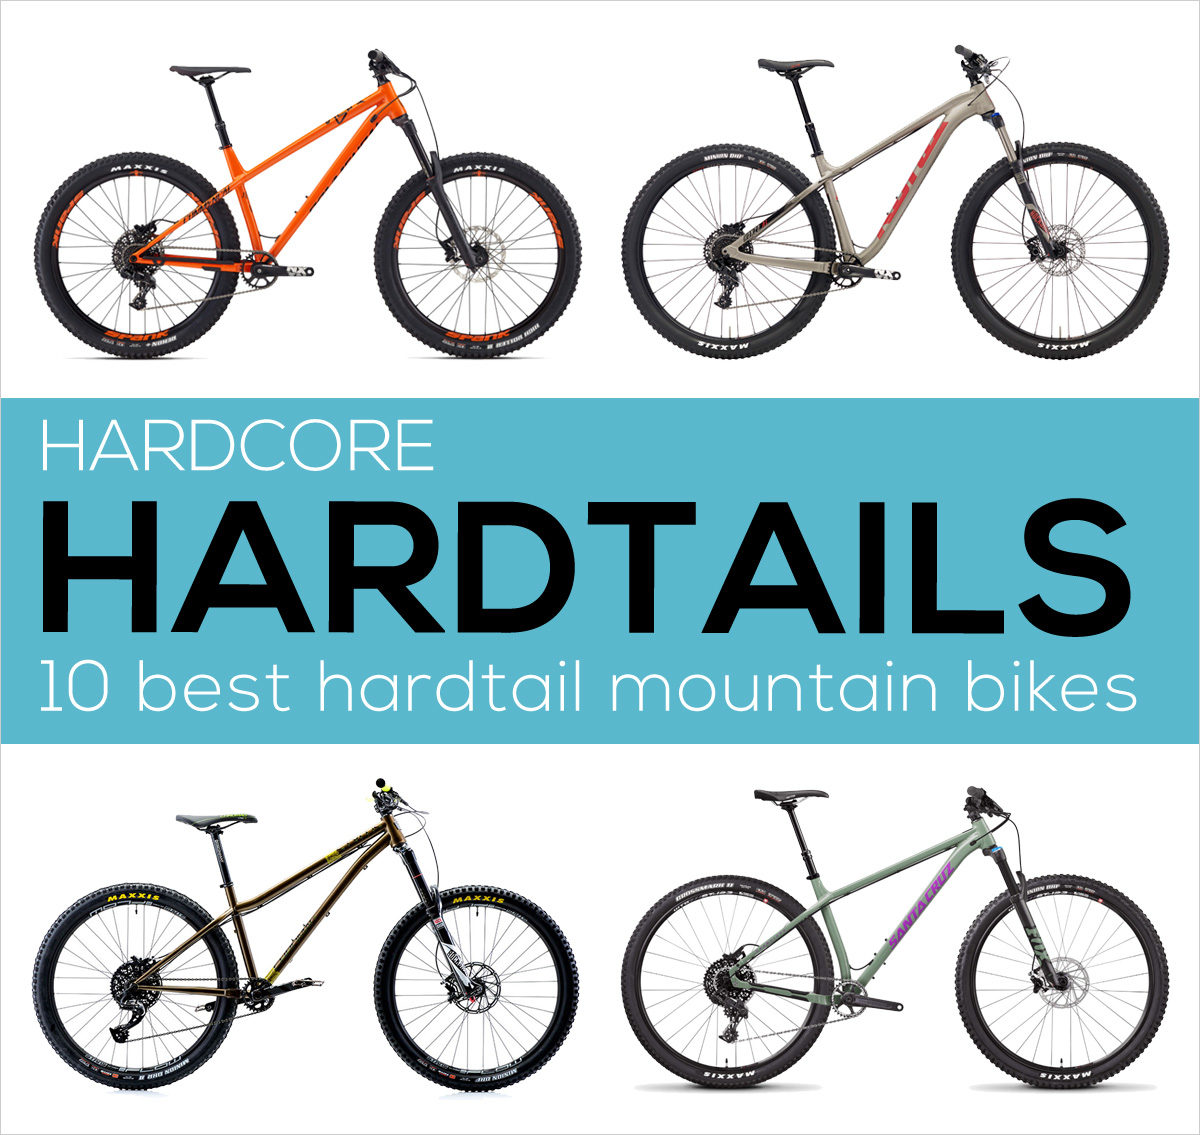 Hardcore hardtail mountain bikes